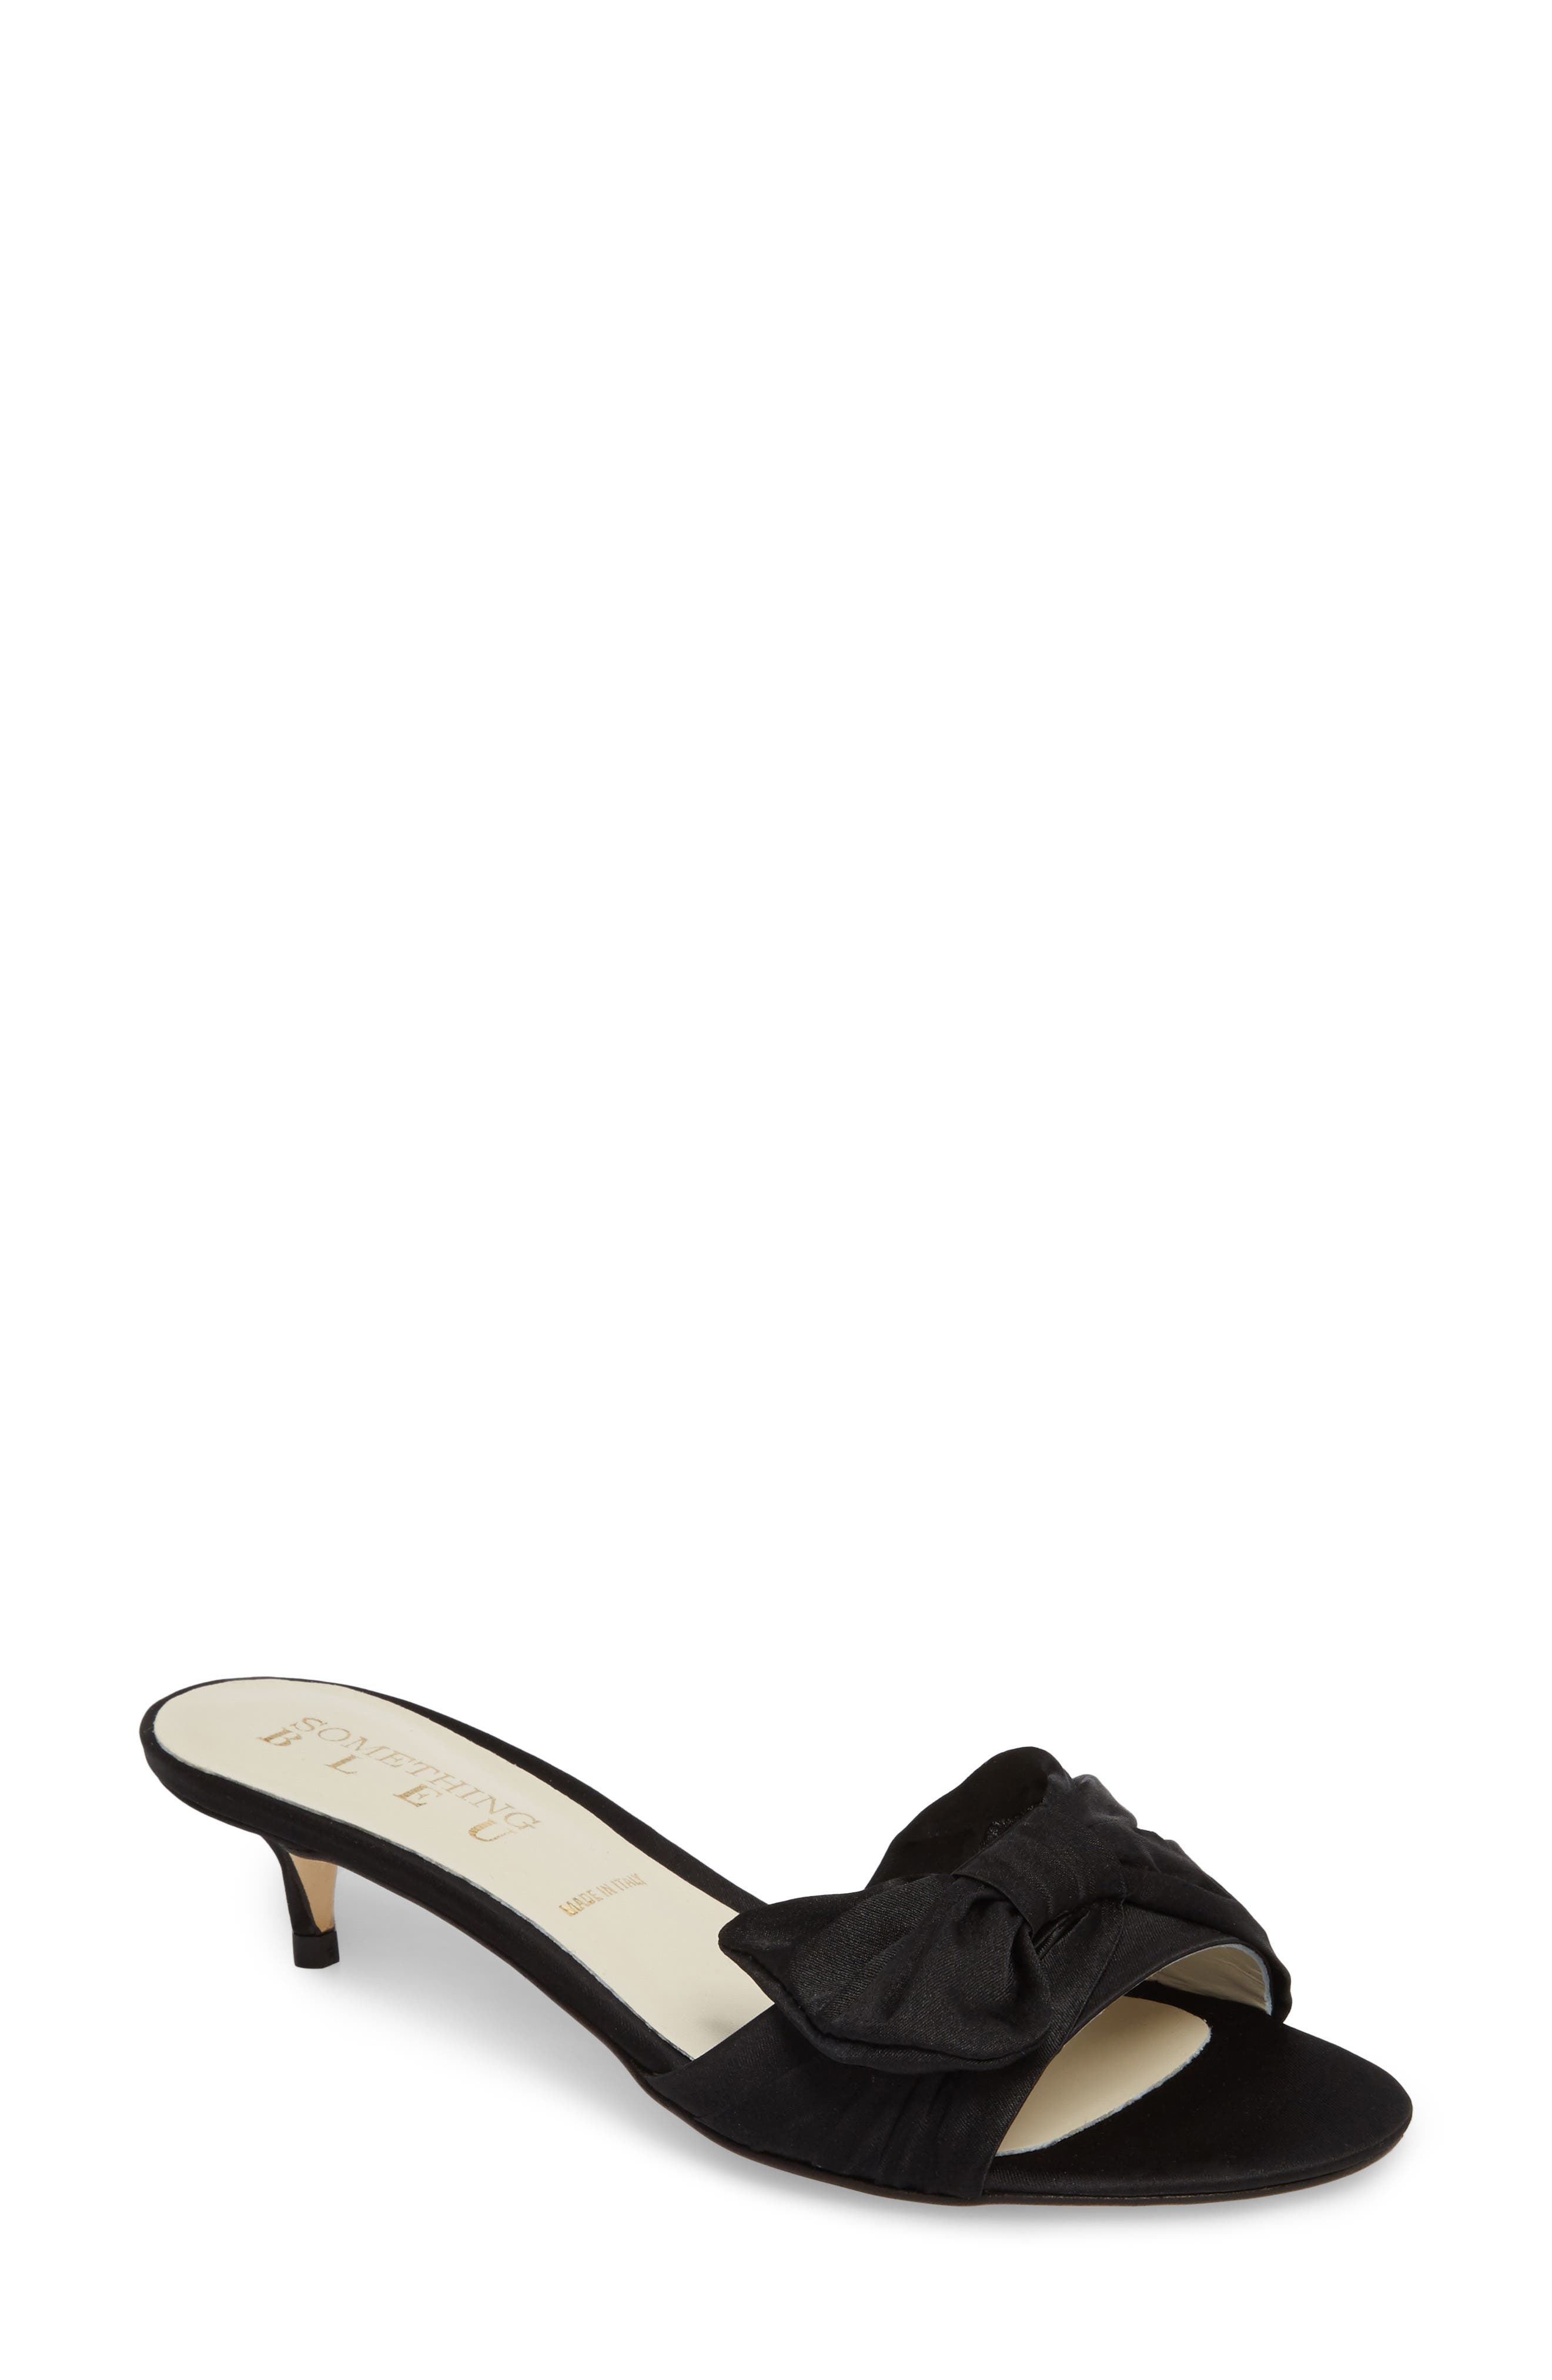 SOMETHING BLEU,                             Butterfly Bow Mule,                             Main thumbnail 1, color,                             001